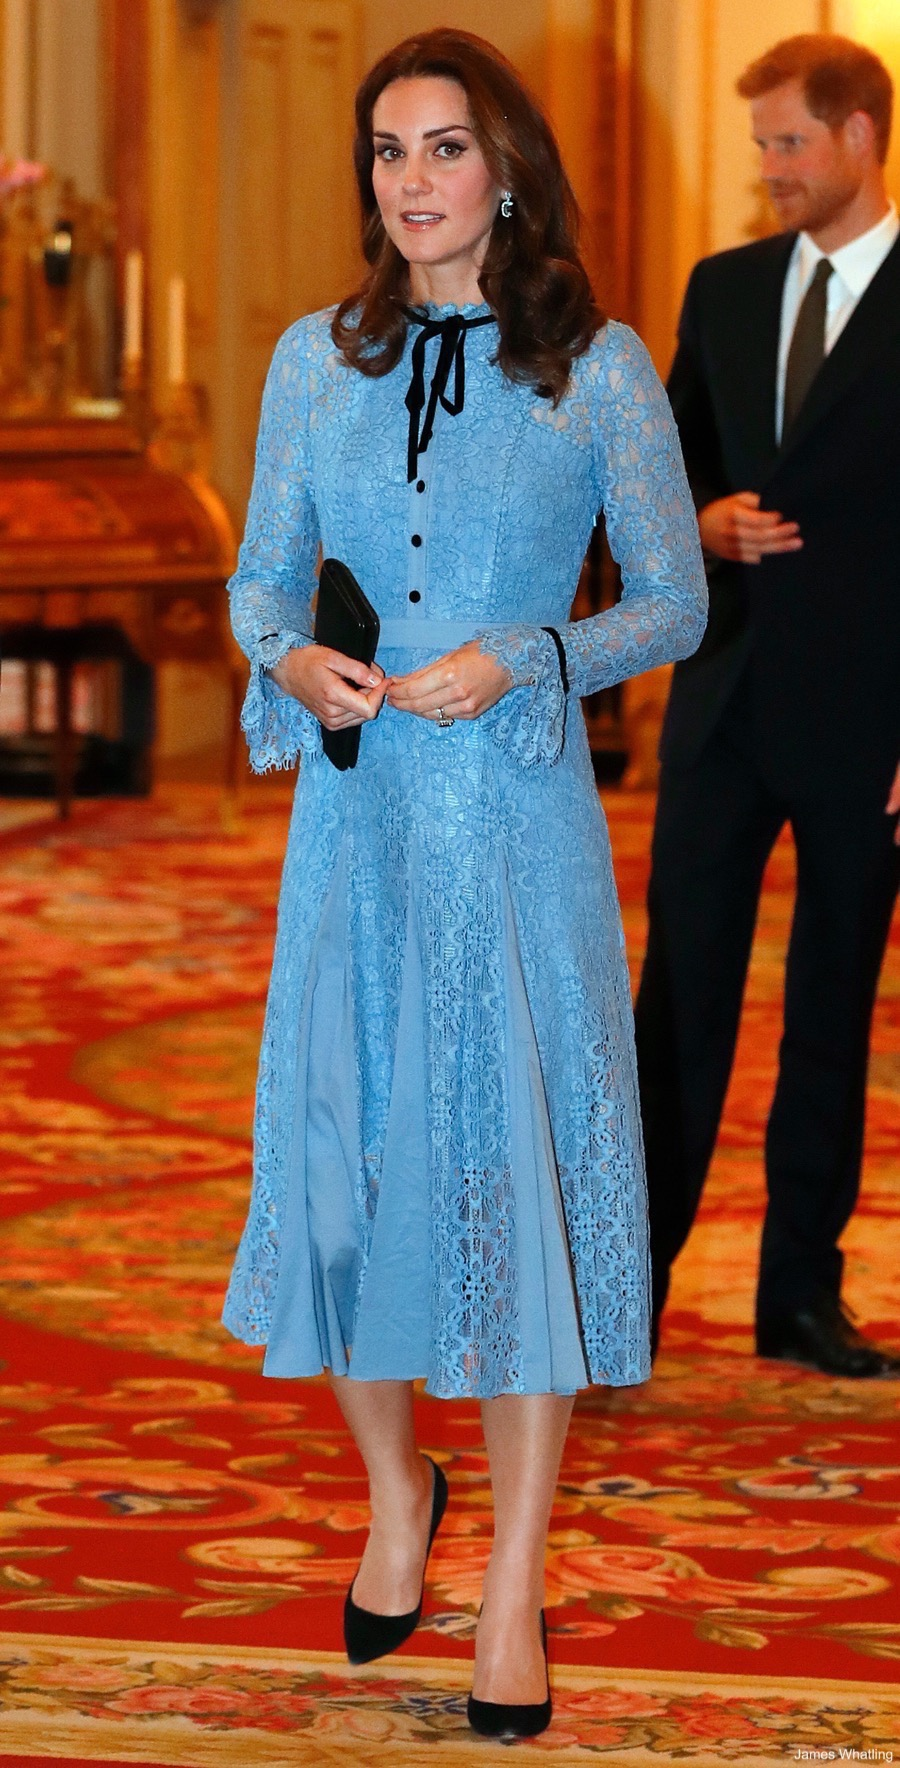 Kate Middleton at the mental health reception at Buckingham Palace